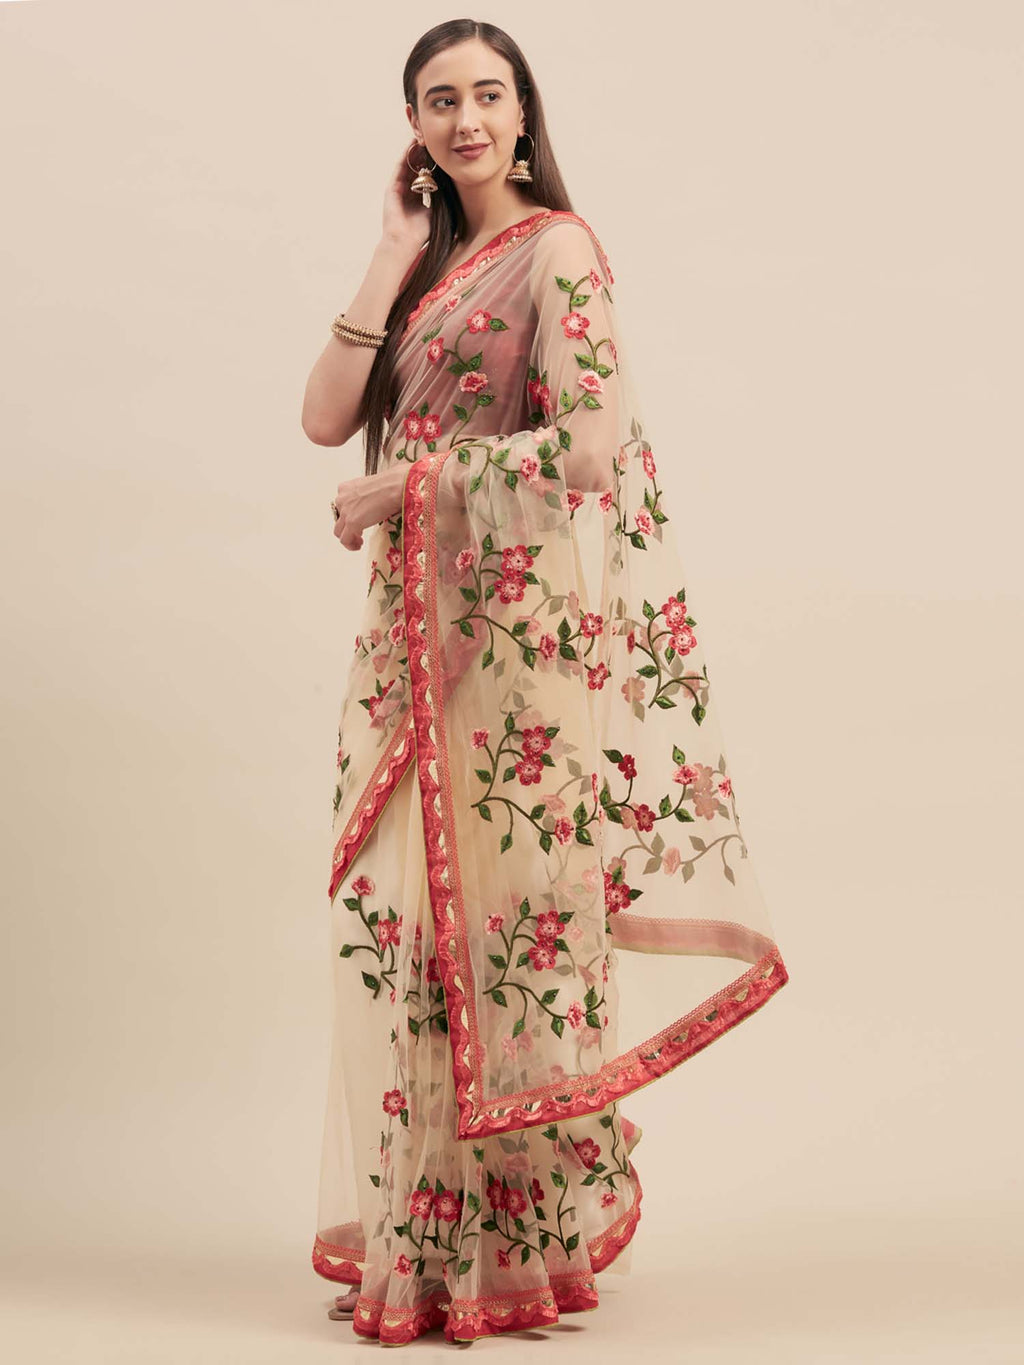 Beige Net Machine Thread Embroidered Saree With Crystal Stonework - Riviera Closet